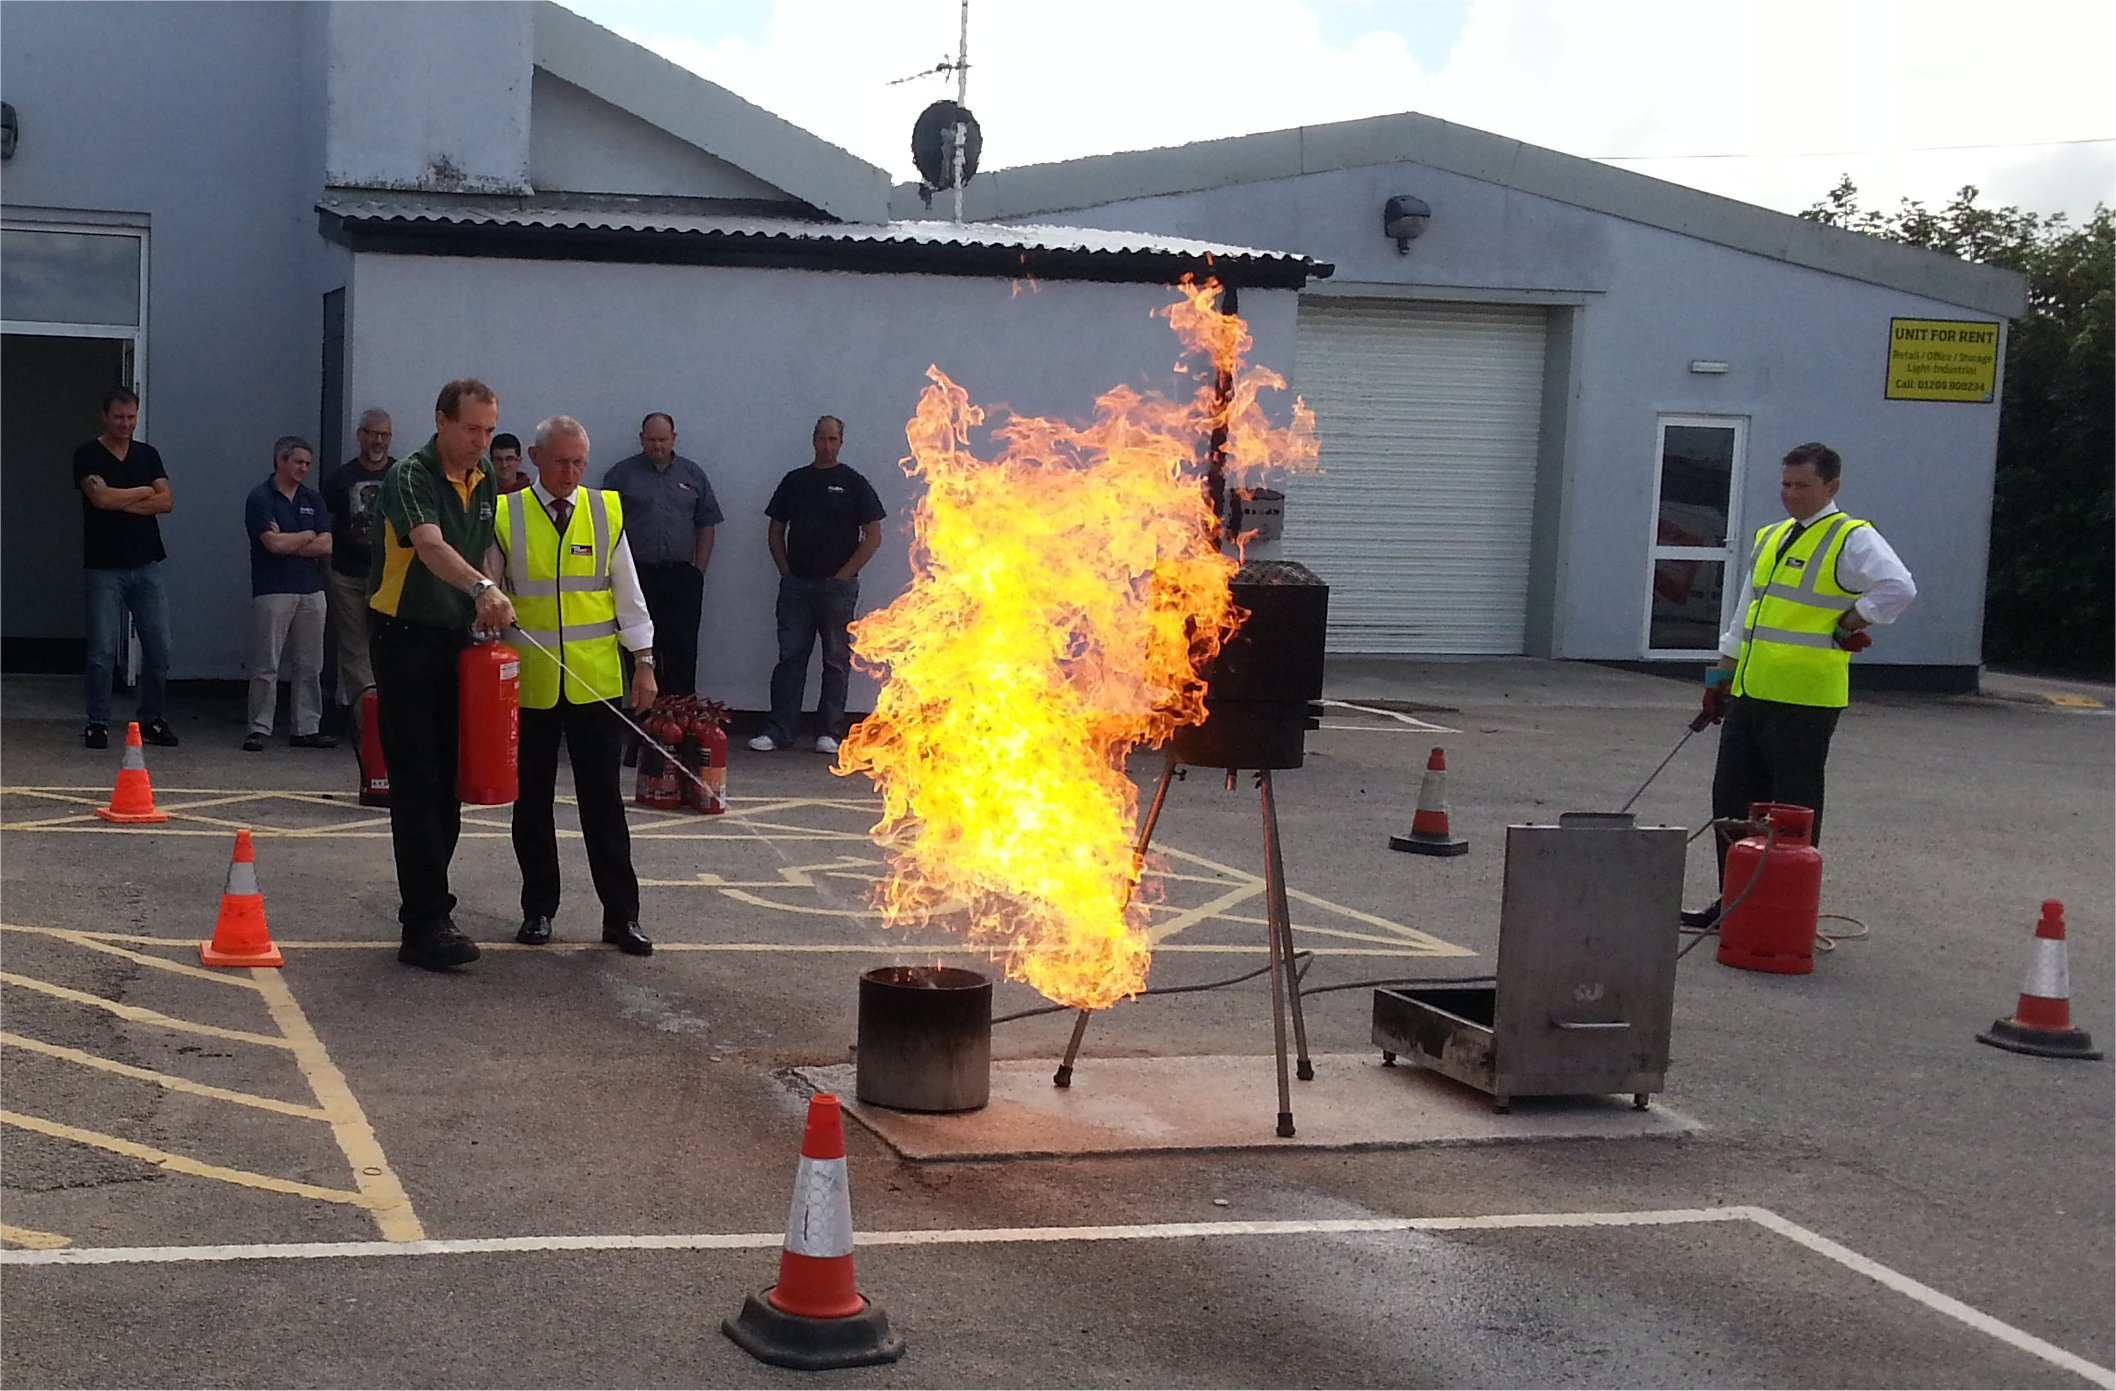 Fire risk assessment essex – F.I.T- Health and Safety ...